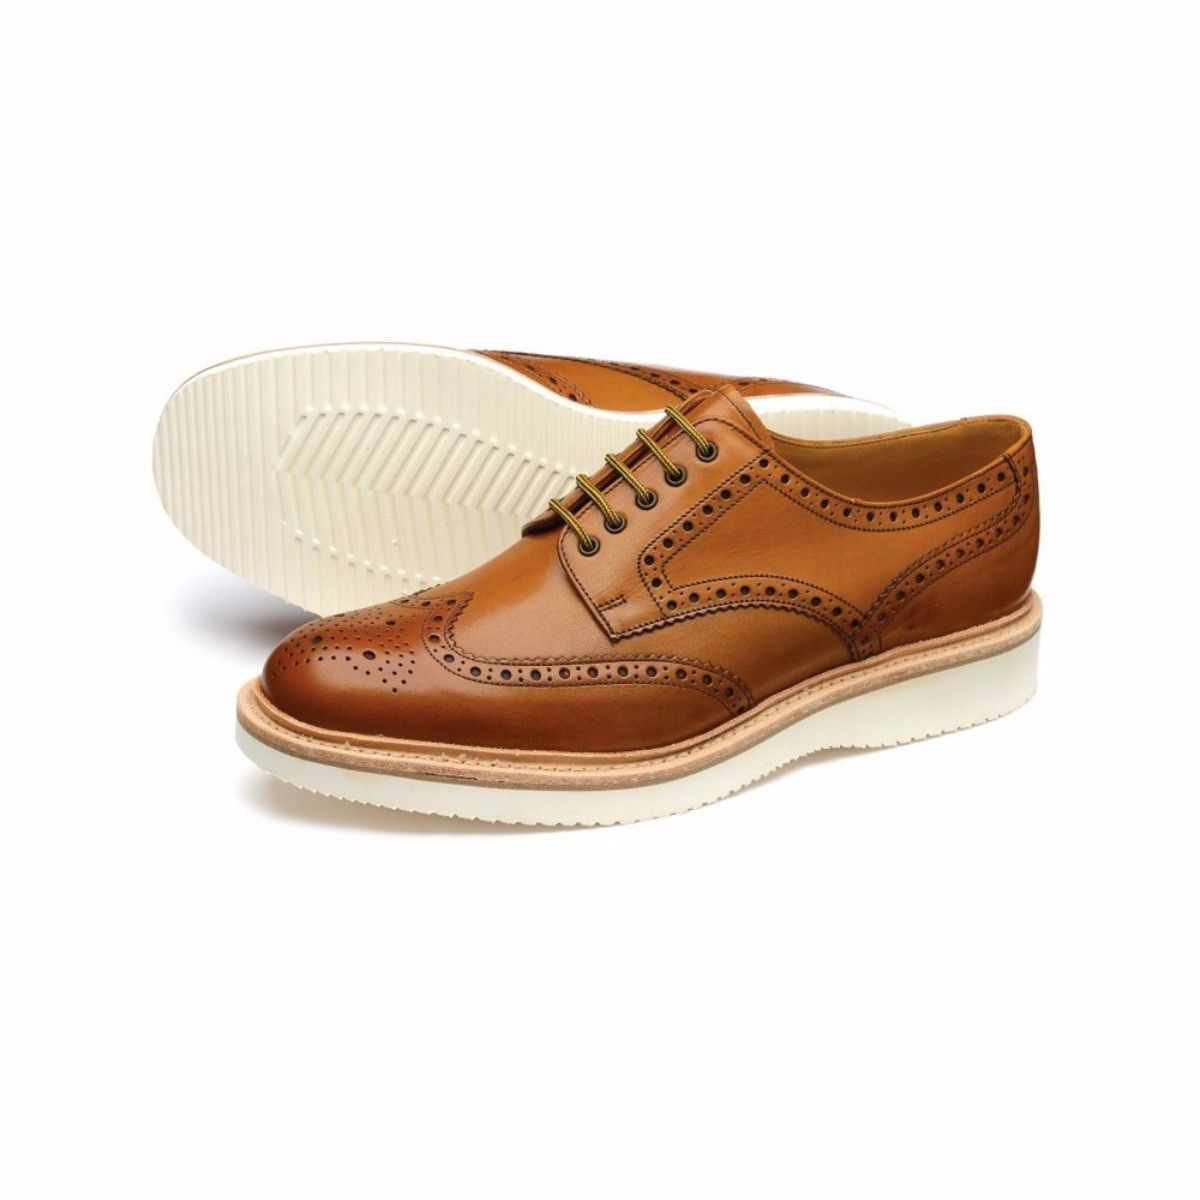 Buy Loake Cobra Vipe Soled Shoes from